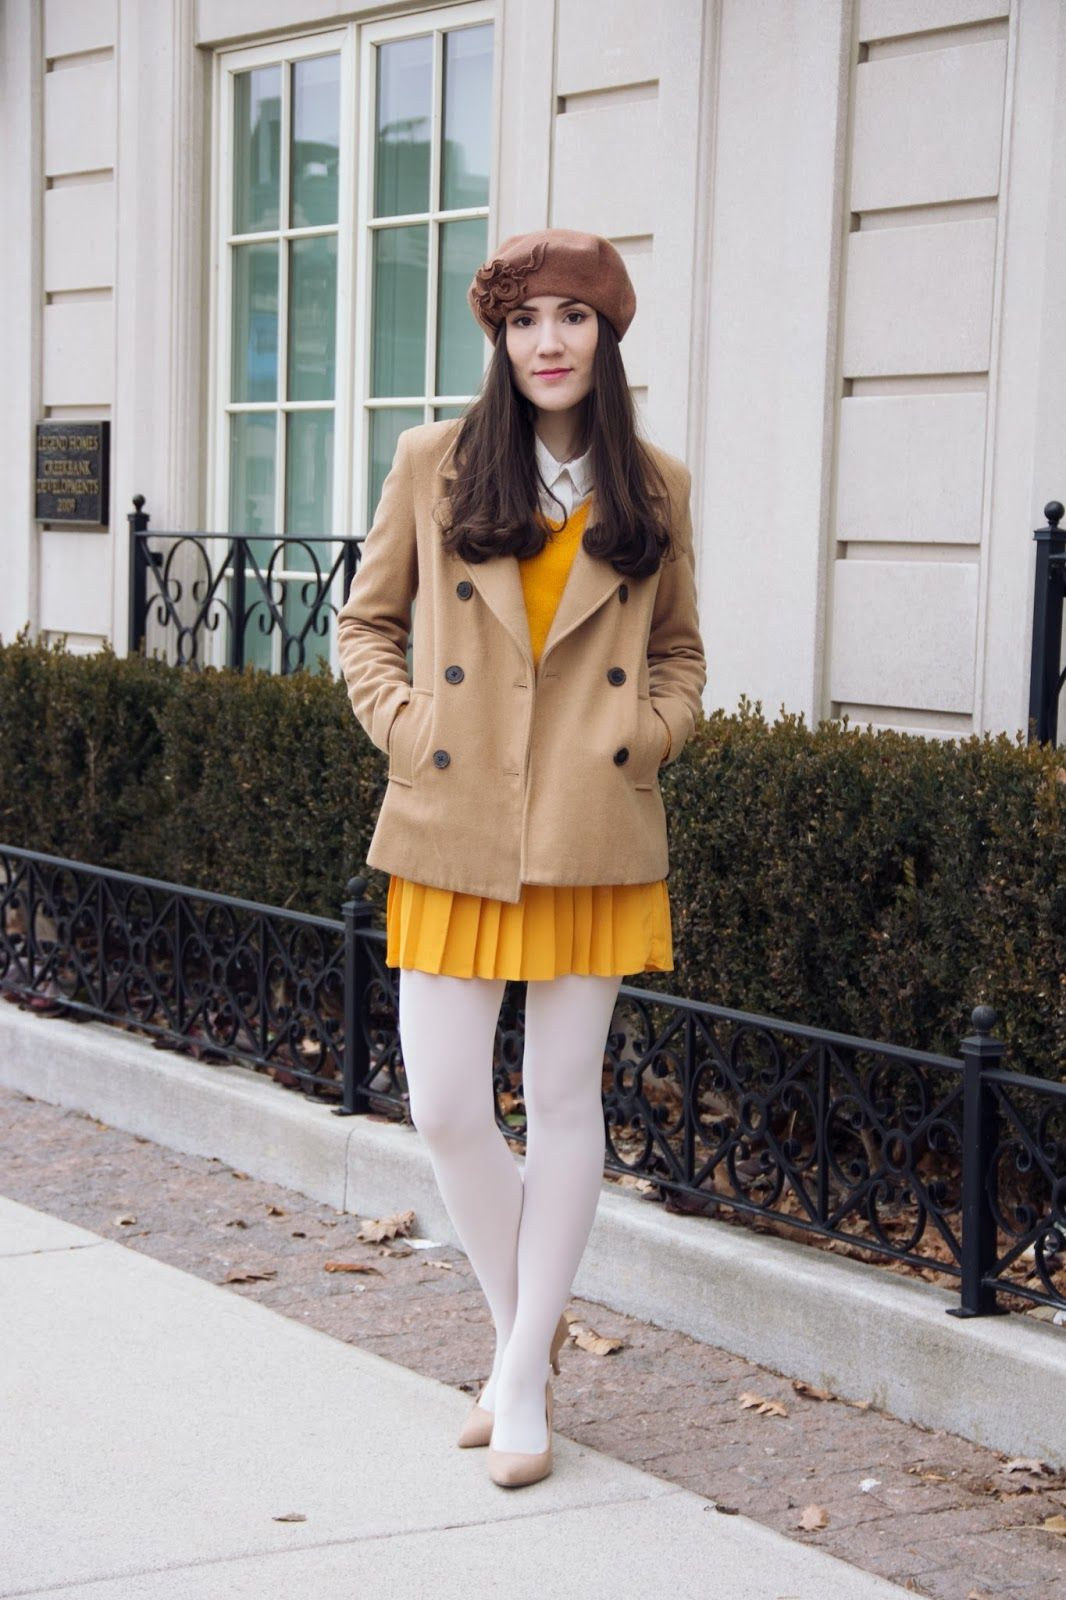 41cf77b74caa5a Awesome mustard against plaques white tights. Traffic-stopping chic! Love  it!